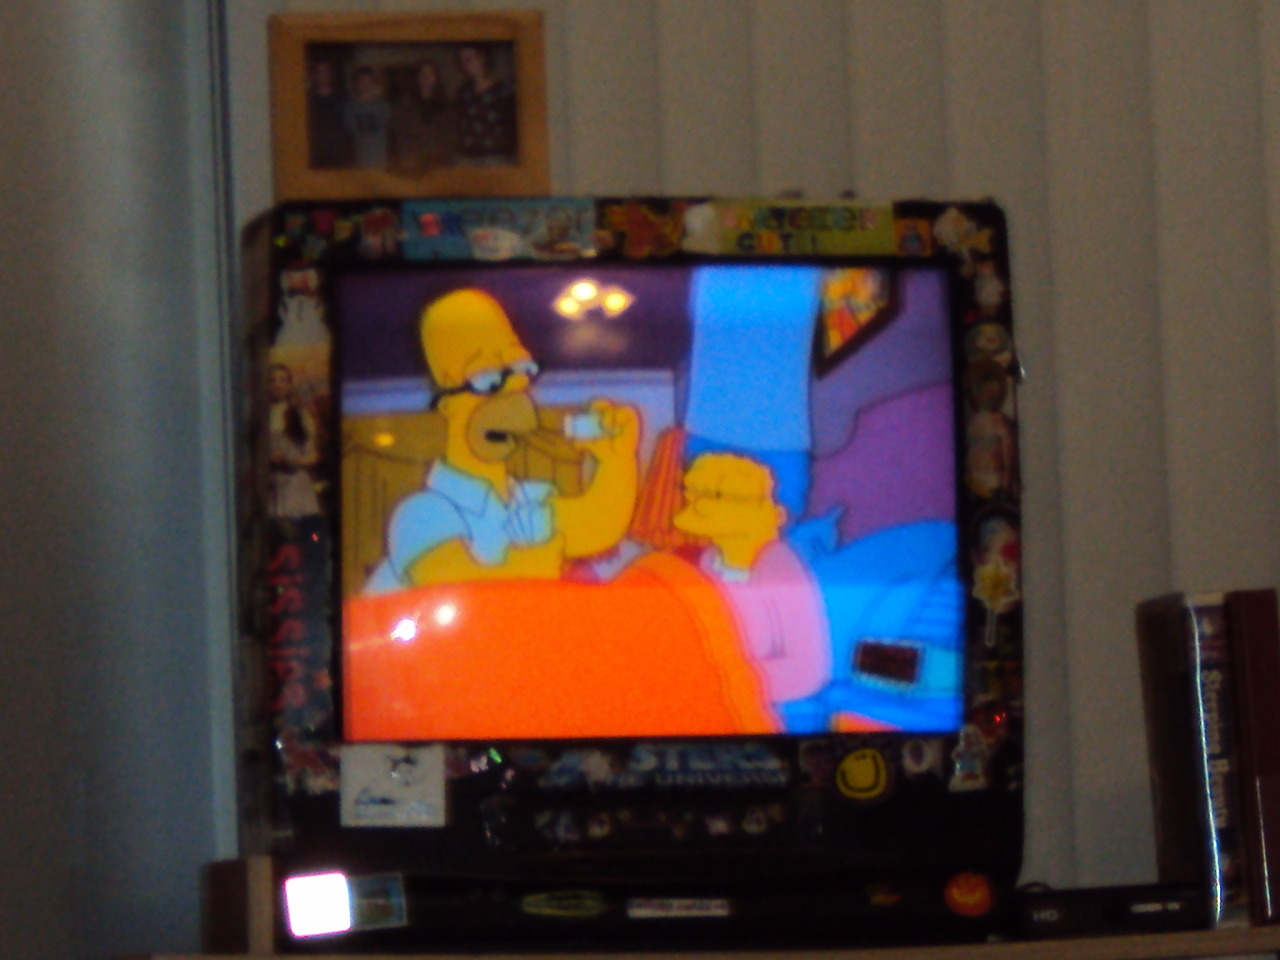 Watching The Simpsons in Michigan (2010). Don't know why photographs of televisions are so cool to me.